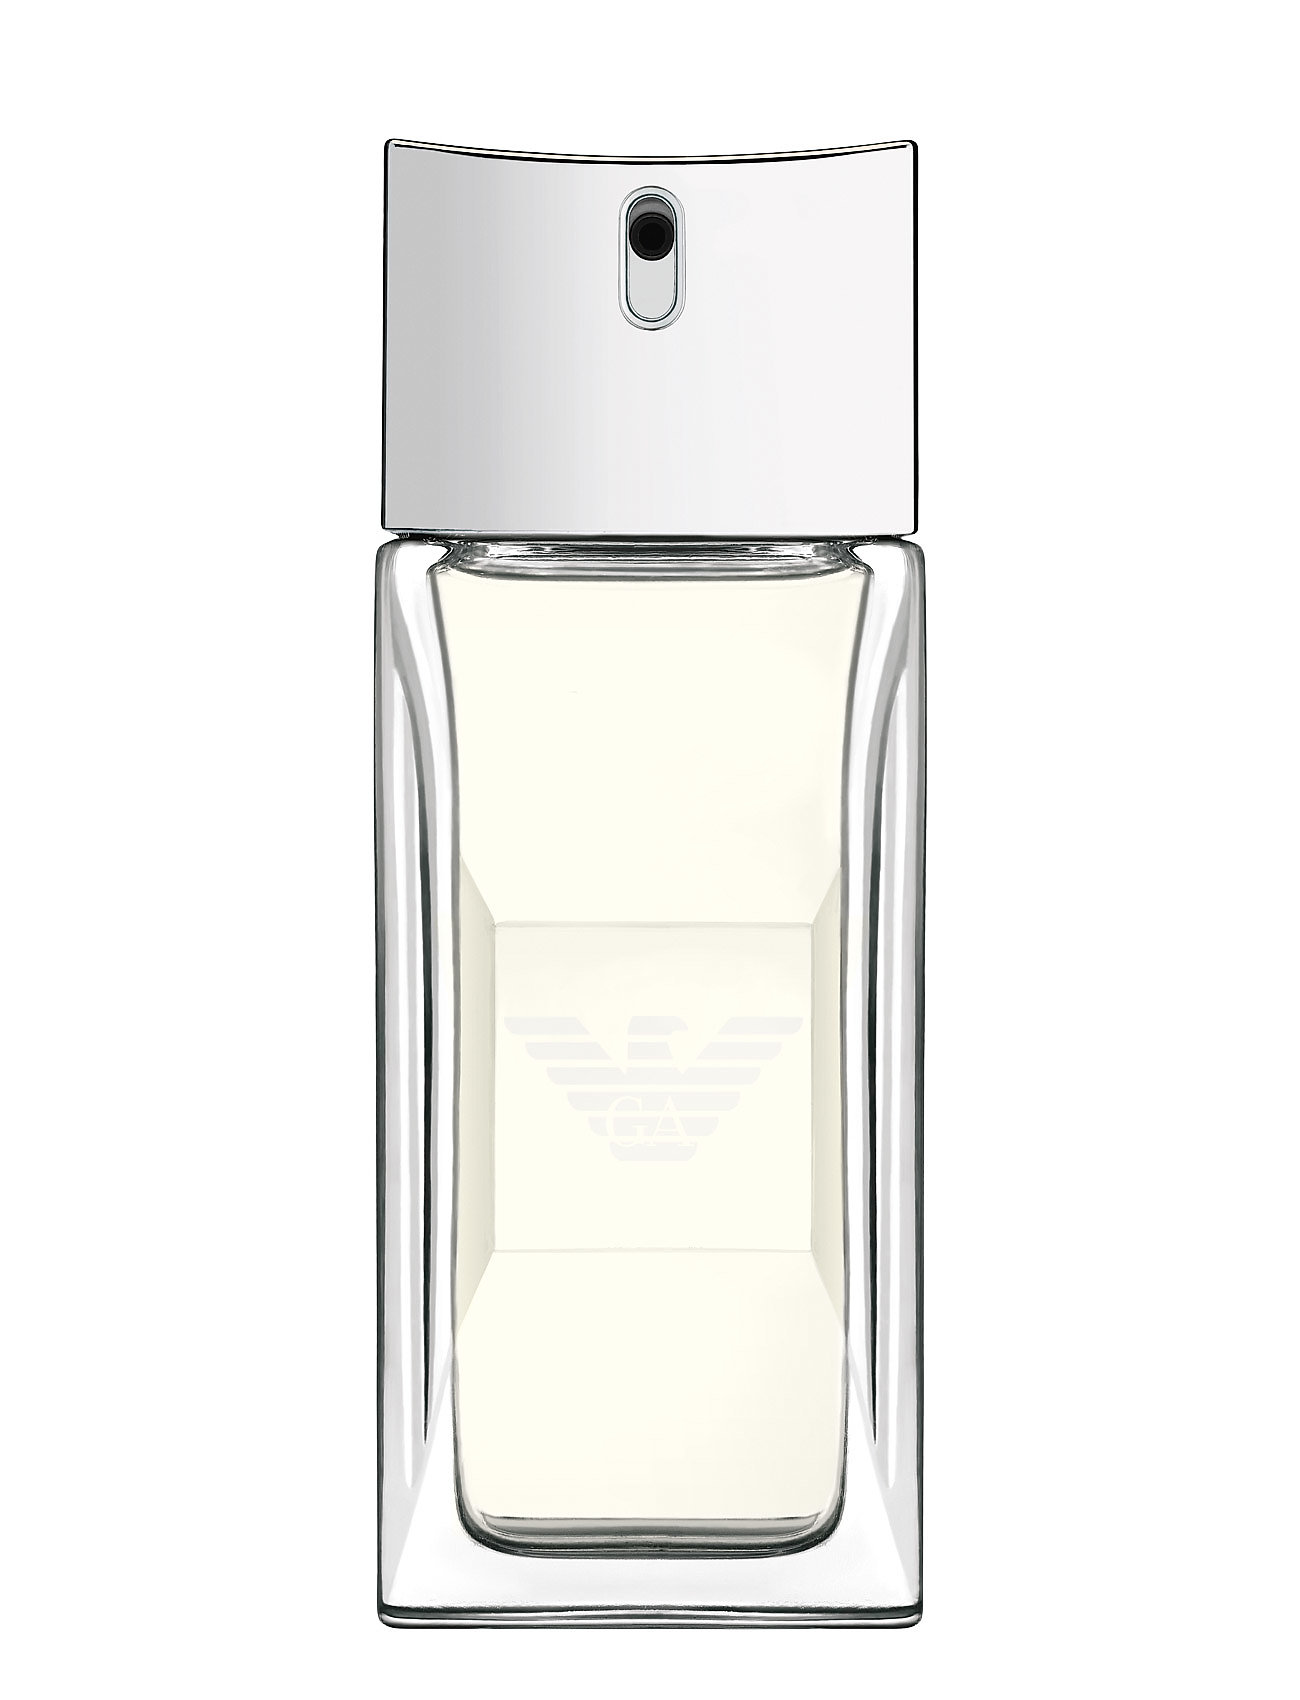 giorgio armani – Emporio diamonds for men eau de toilette 50 ml fra boozt.com dk